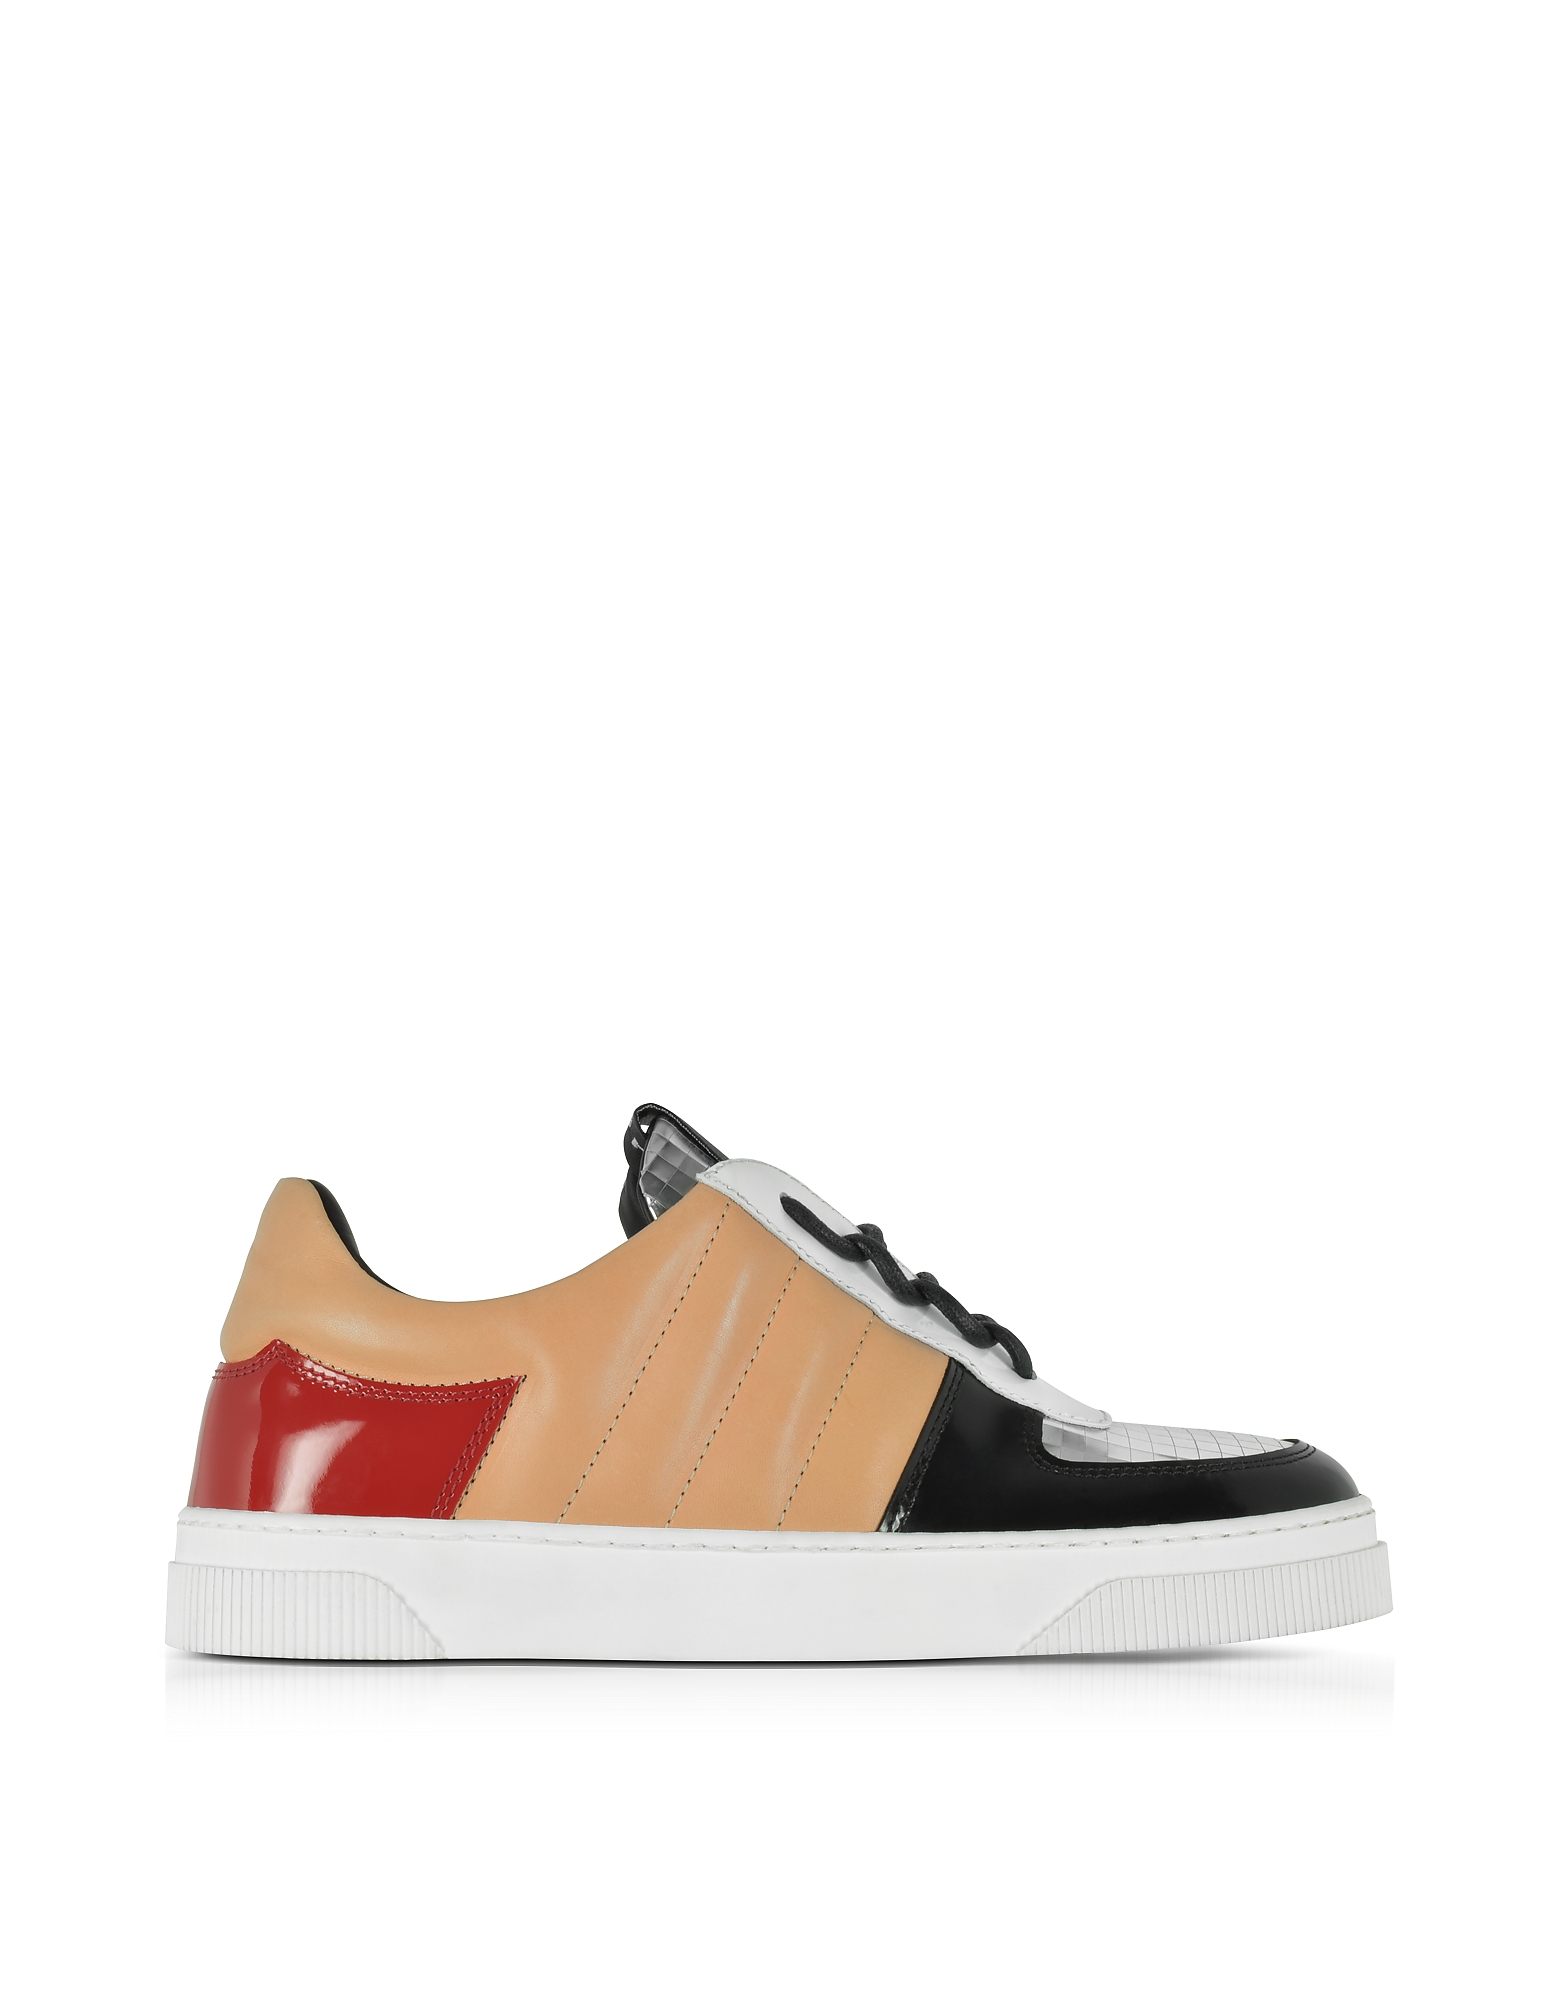 Proenza Schouler Shoes, Light Brown Nappa and Silver Laminated Leather Sneakers